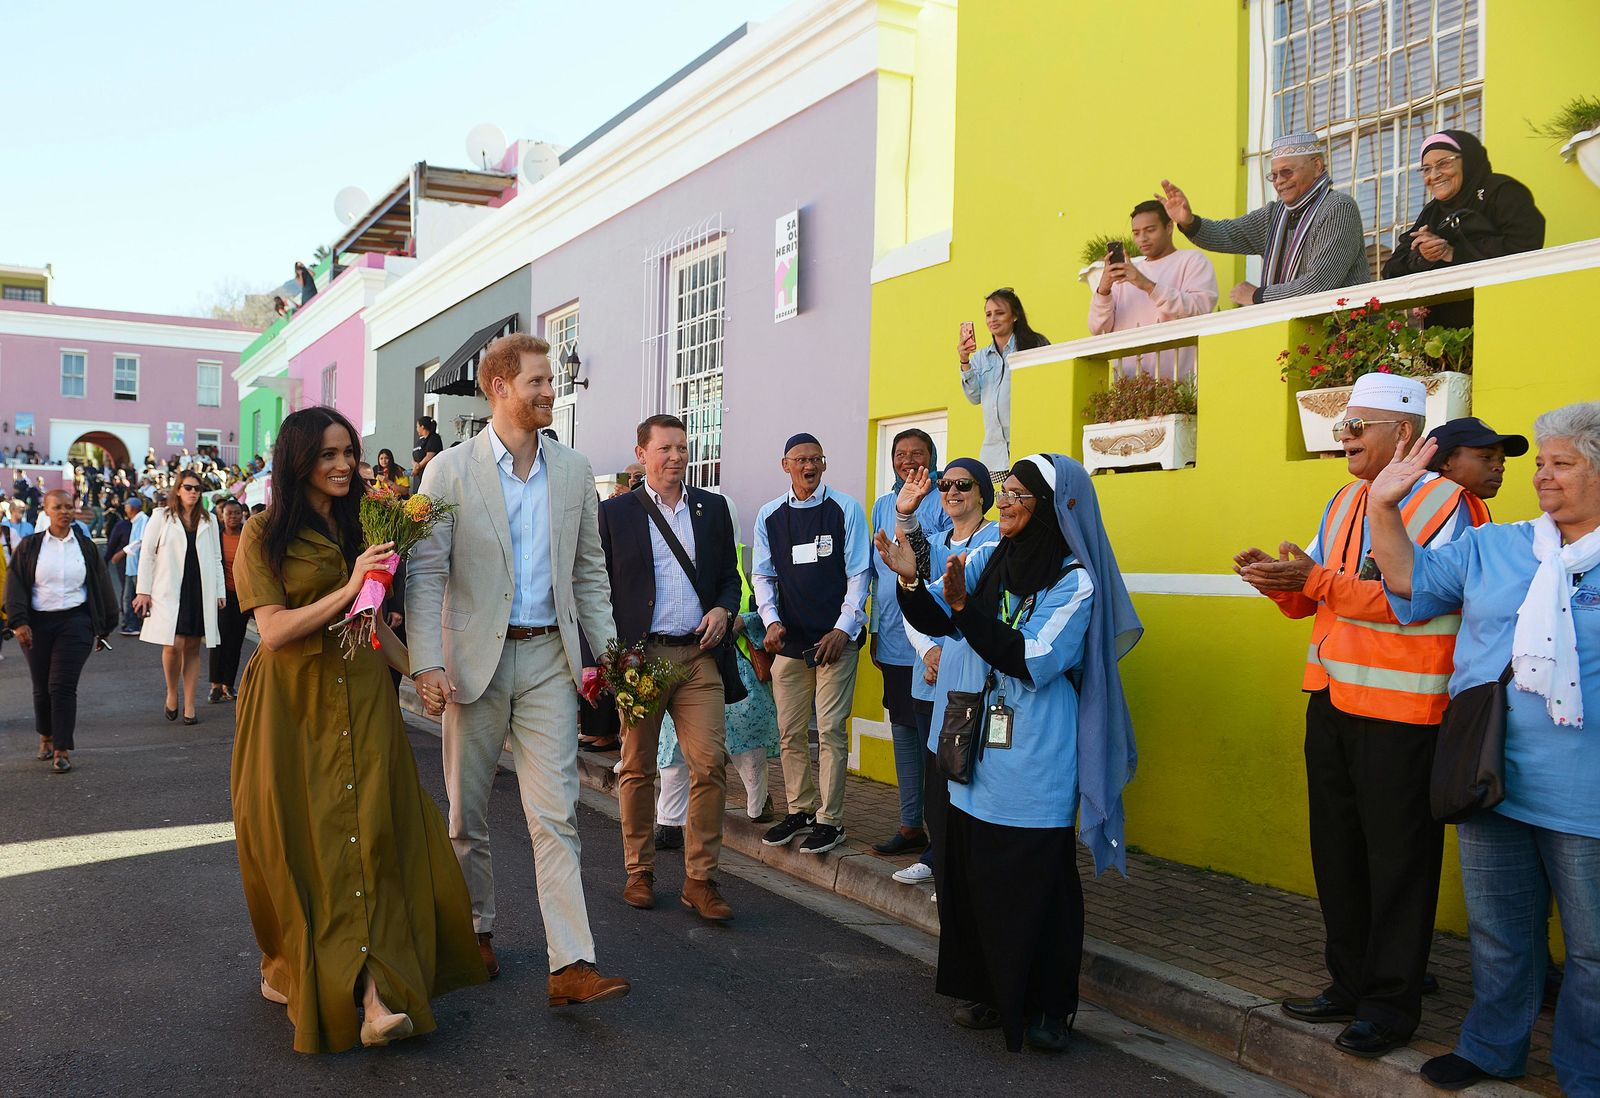 FILE - In this Tuesday, Sept, 24, 2019 file photo, Britain's Prince Harry, and his wife, Meghan, the Duchess of Sussex, during a walkabout in Bo-Kaap, a heritage site, in Cape Town, South Africa.  (Courtney Africa/Pool via AP, File)